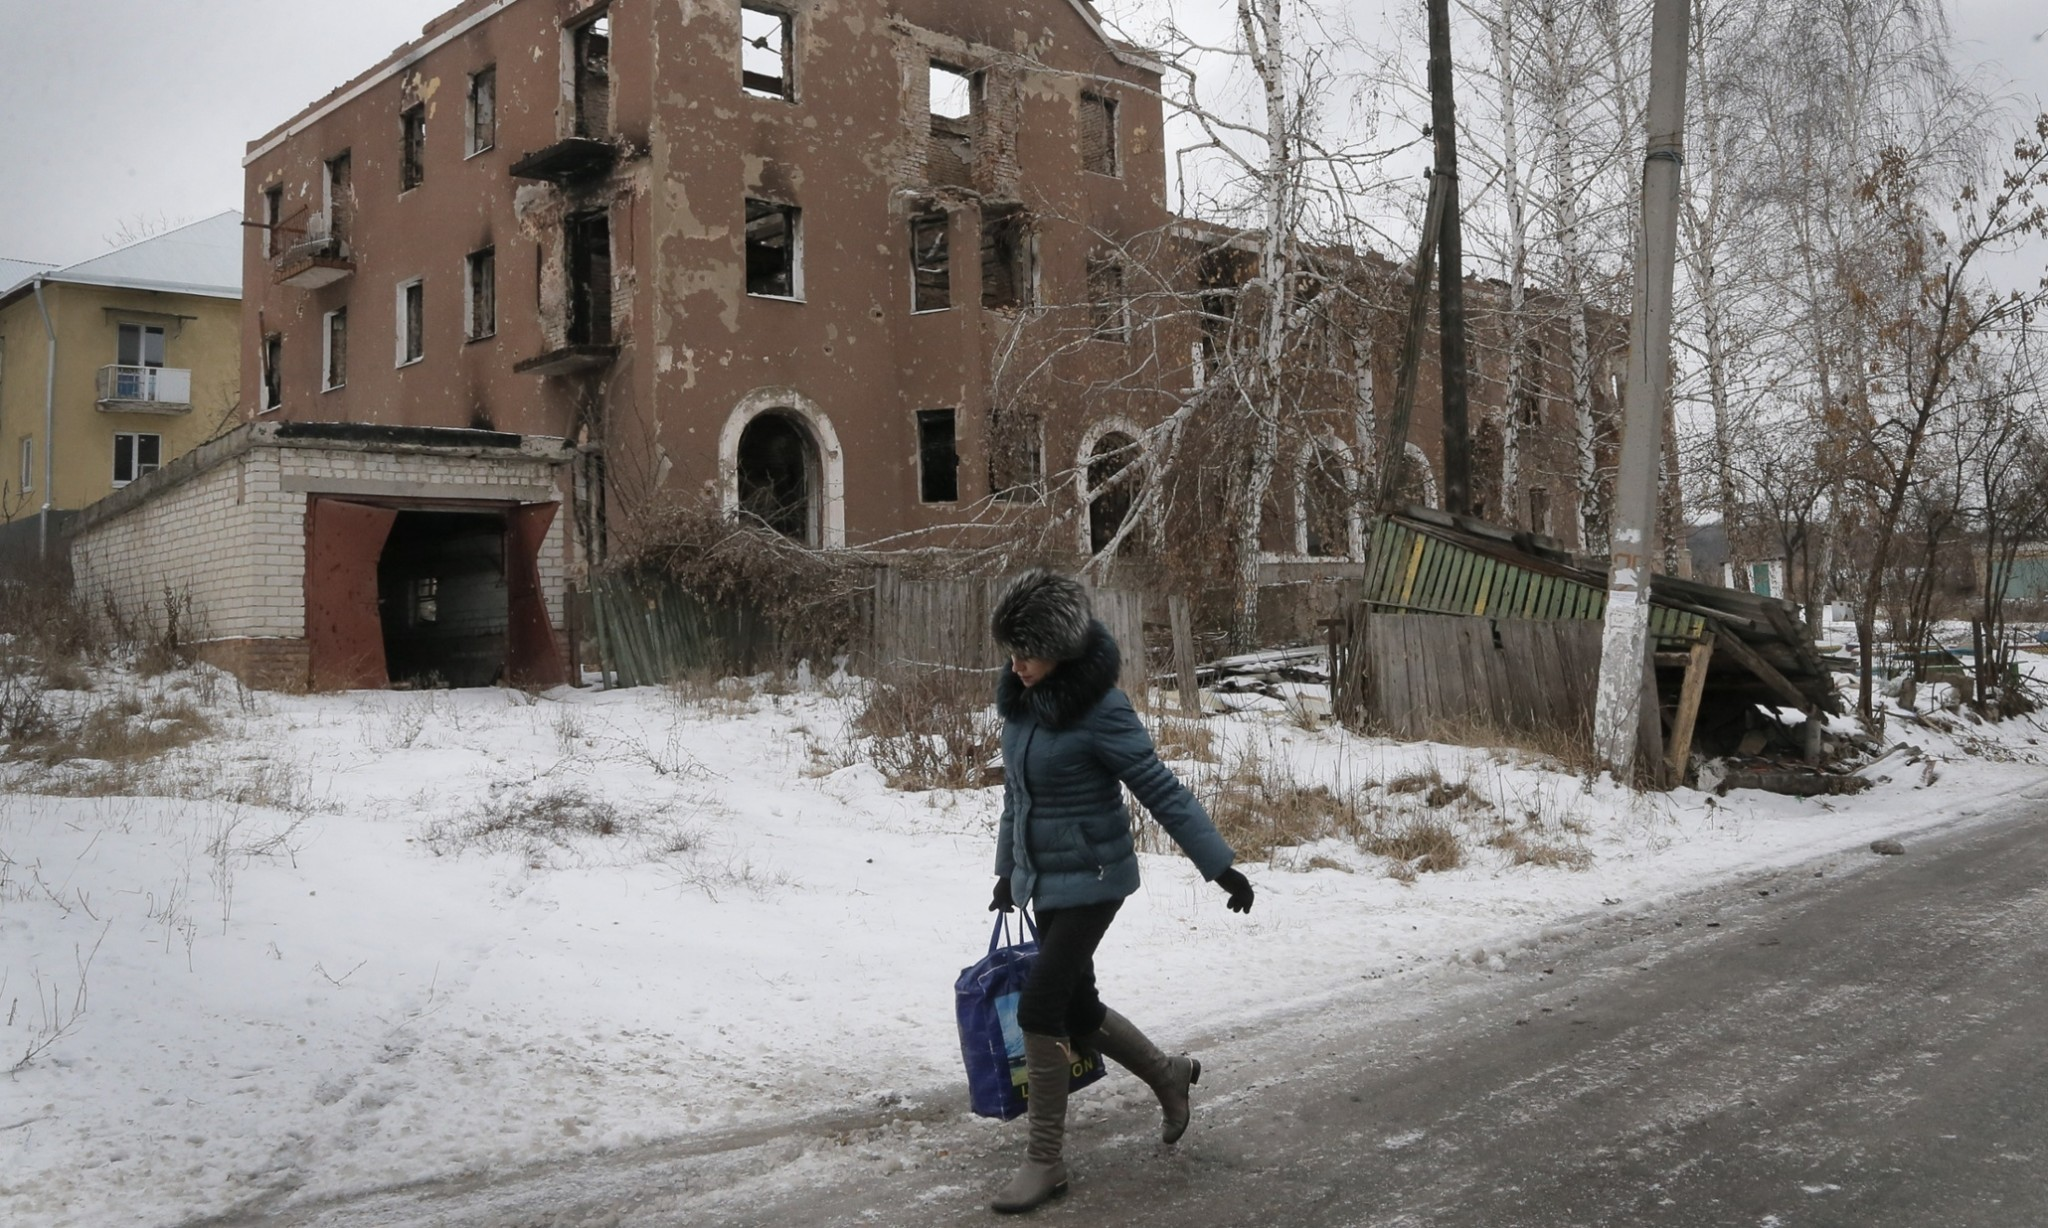 Life on the frontline of the Ukraine conflict